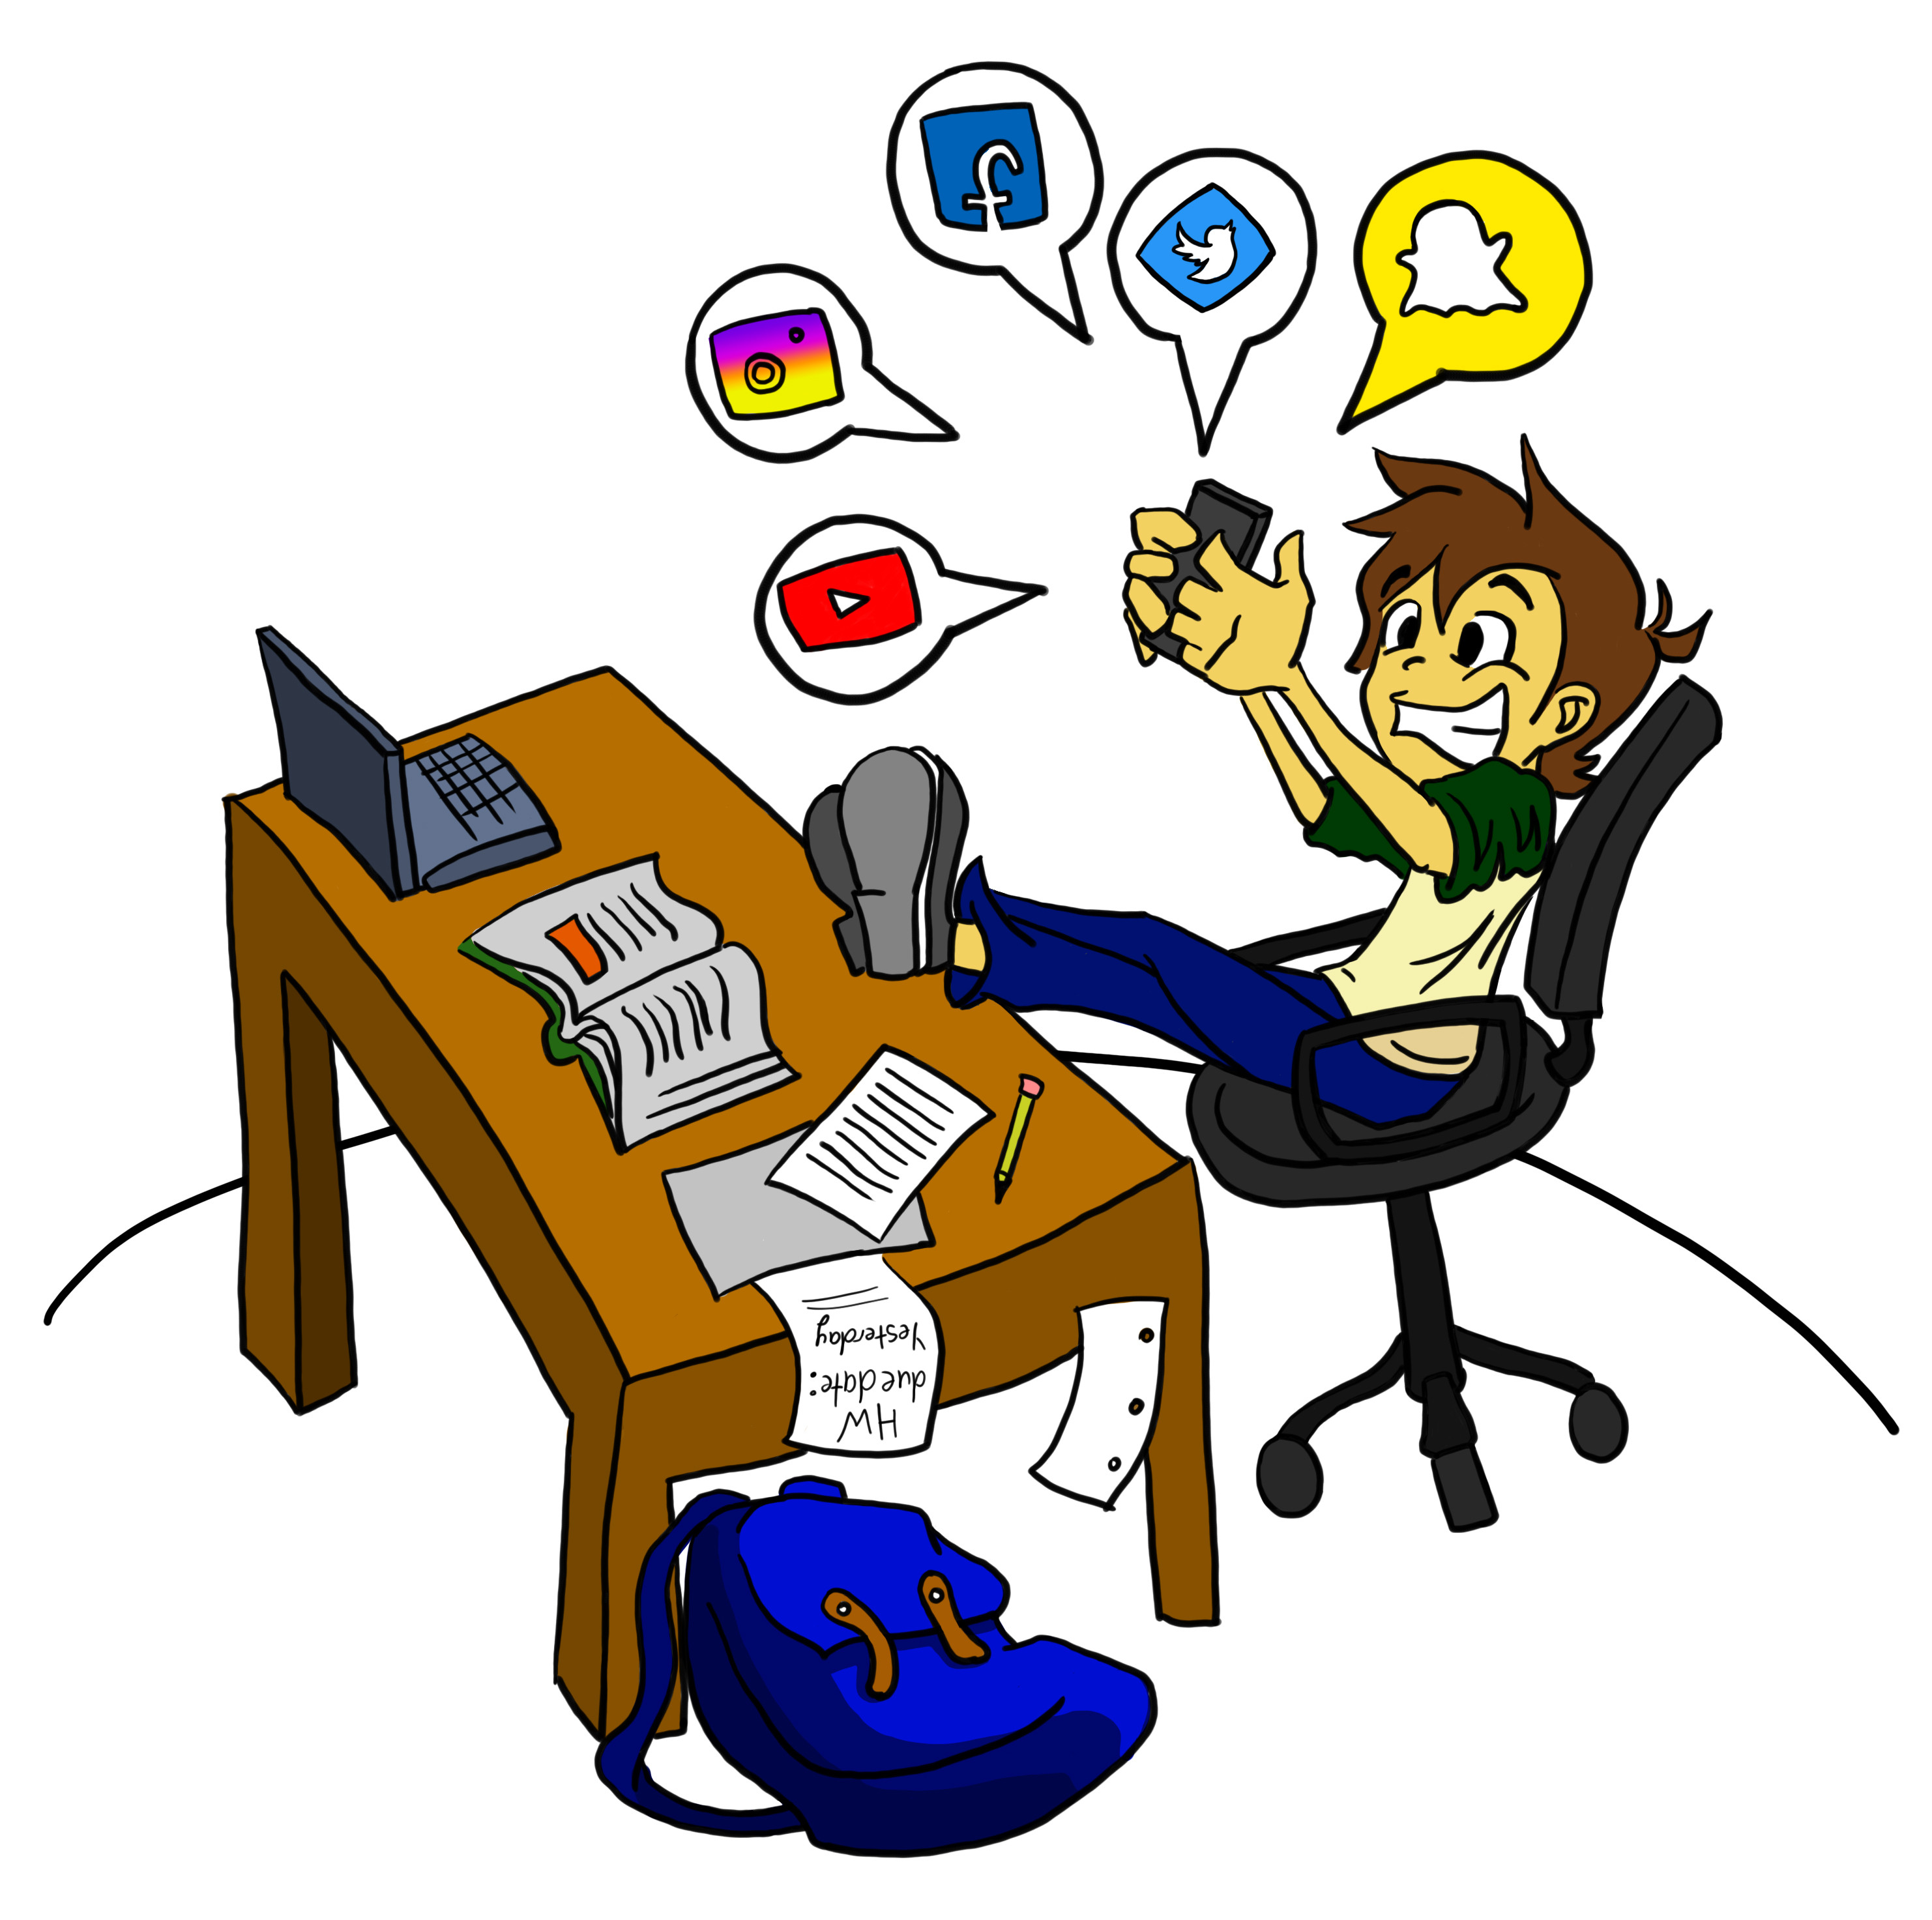 Commend clipart graphic royalty free stock Too Much Technology by psi_jaime - Commend Me! graphic royalty free stock